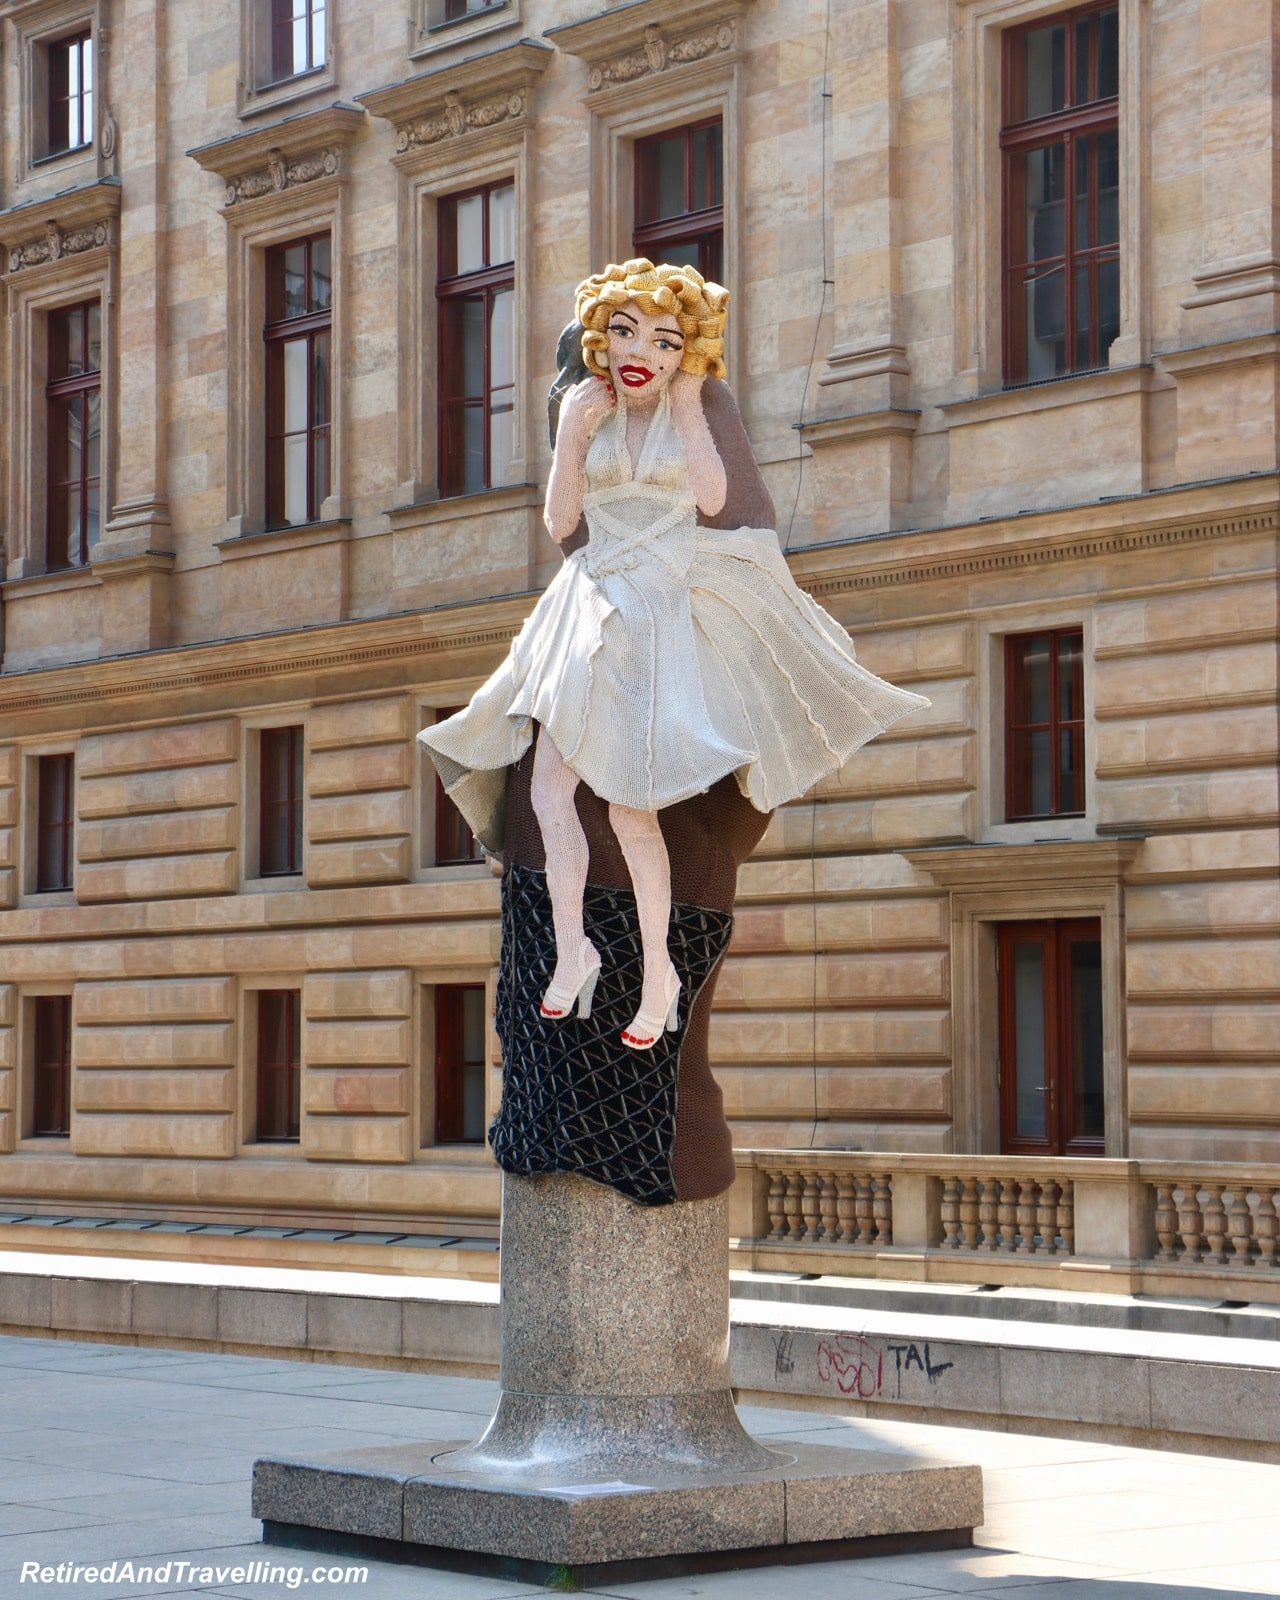 Marilyn Monroe Statue National Theatre Buildings and Architecture - Things To Do In Prague.jpg